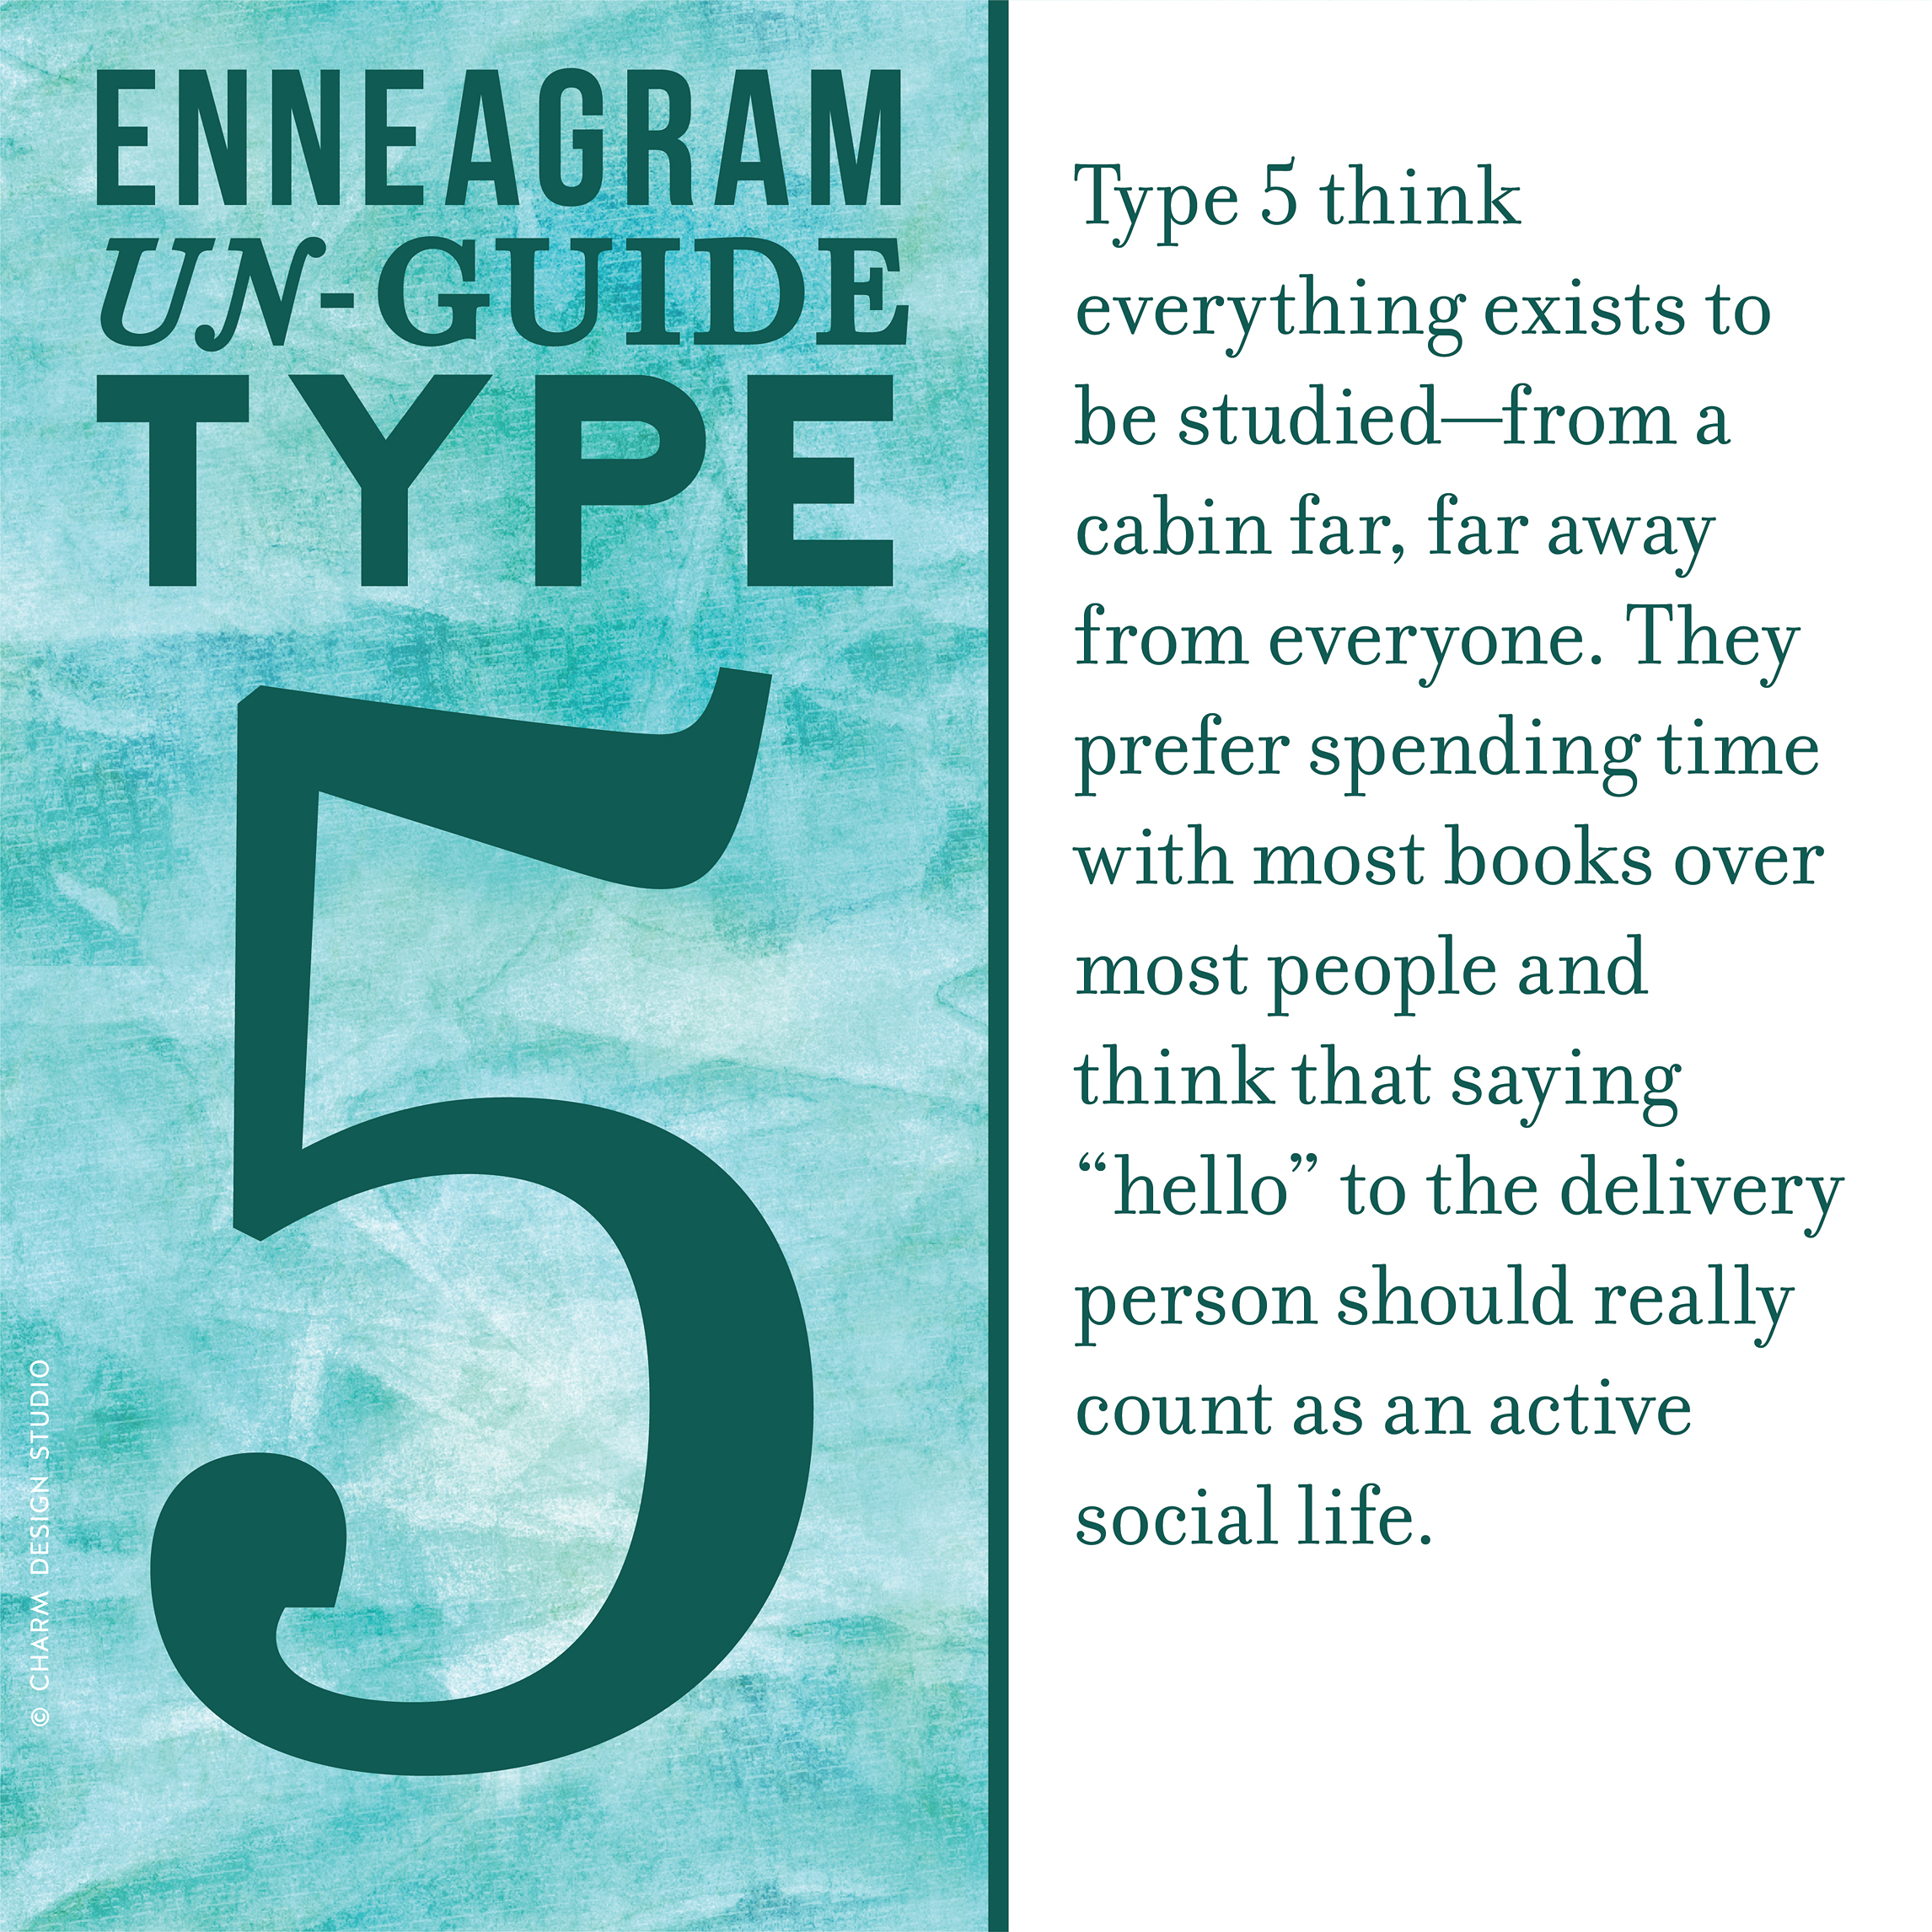 "Enneagram Un-Guide: Type 5 think everything exists to be studied—from a cabin far, far away from everyone. They prefer spending time with most books over most people and think that saying ""hello"" to the delivery person should really count as an active social life. / Design and words © Charm Design Studio"